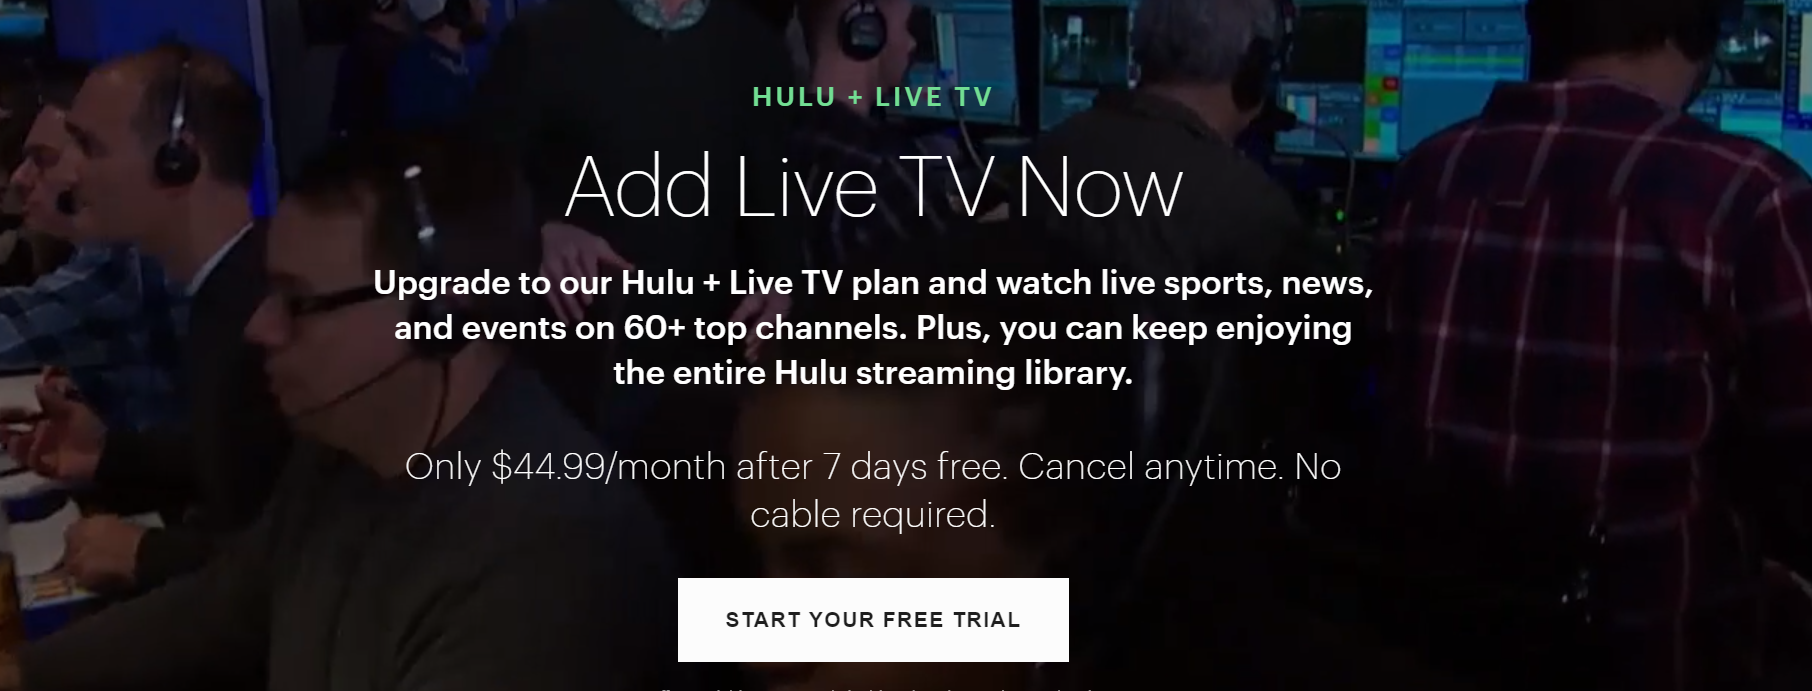 Hulu Live TV Device Support - Amazon Fire TV, Roku, and More